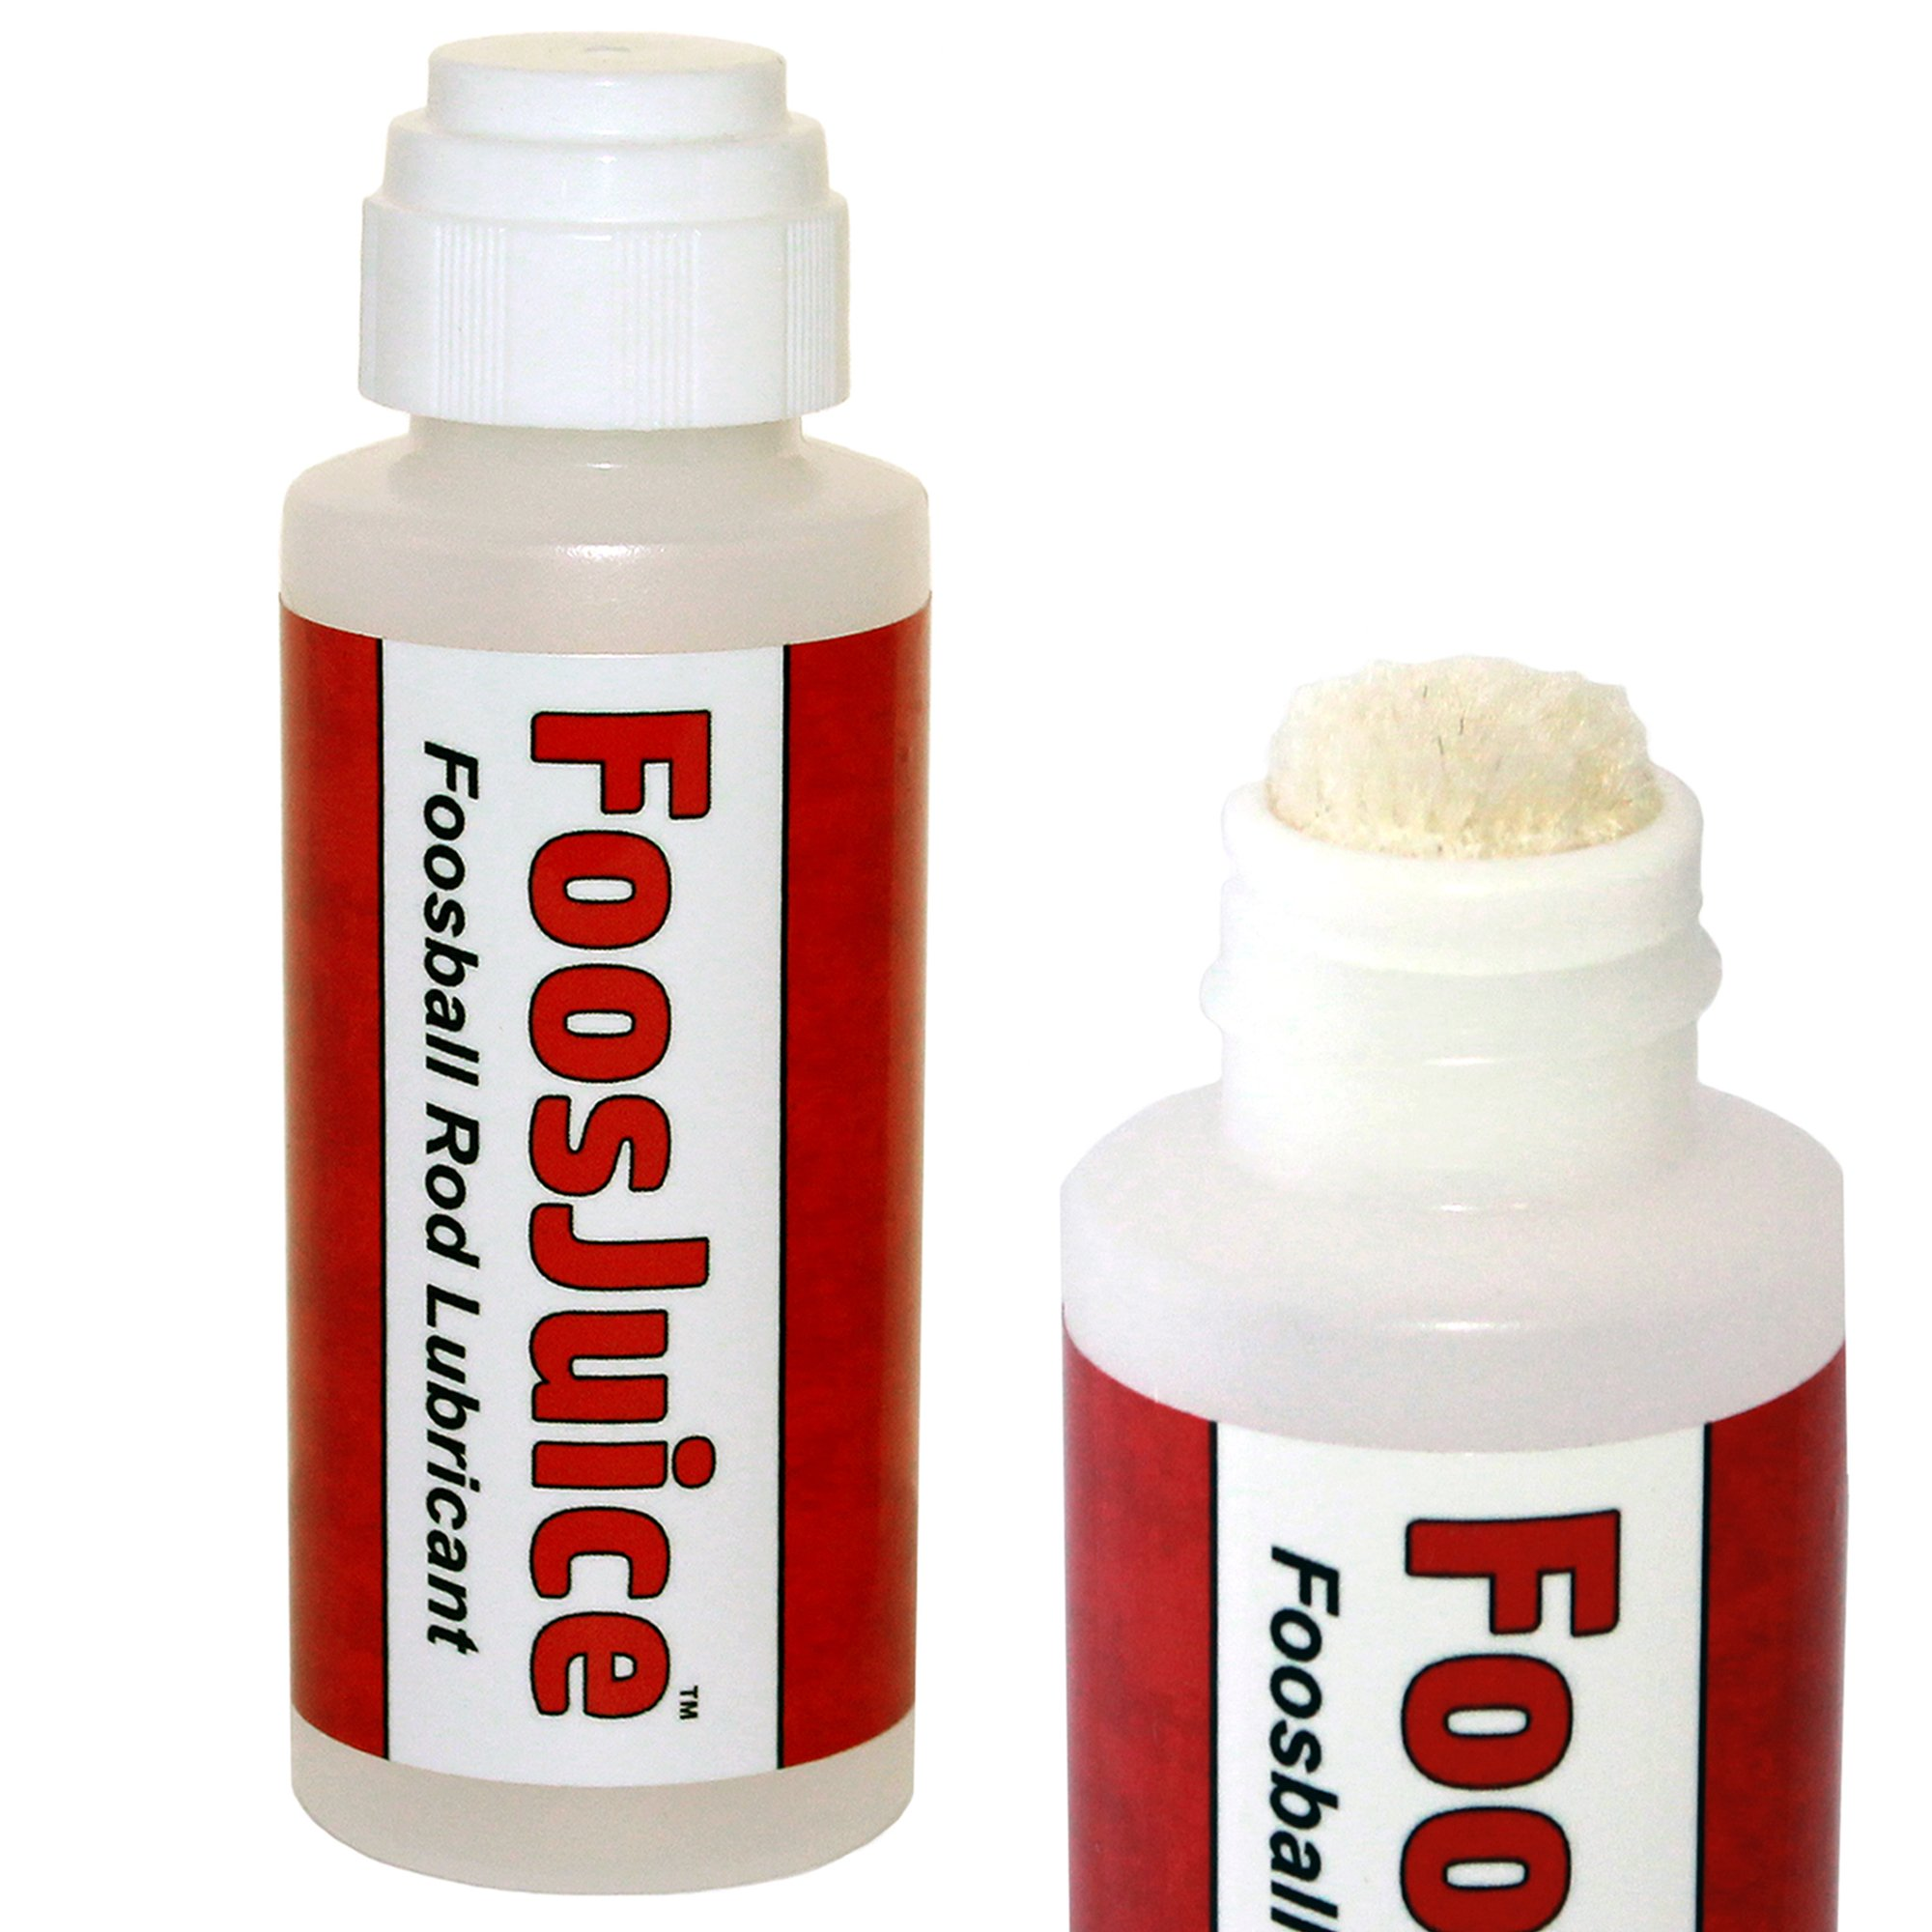 Spot On FoosJuice 100% Silicone Foosball Rod Lubricant with Dauber Top Applicator - The Clean and Easy to Use Lube by Spot On